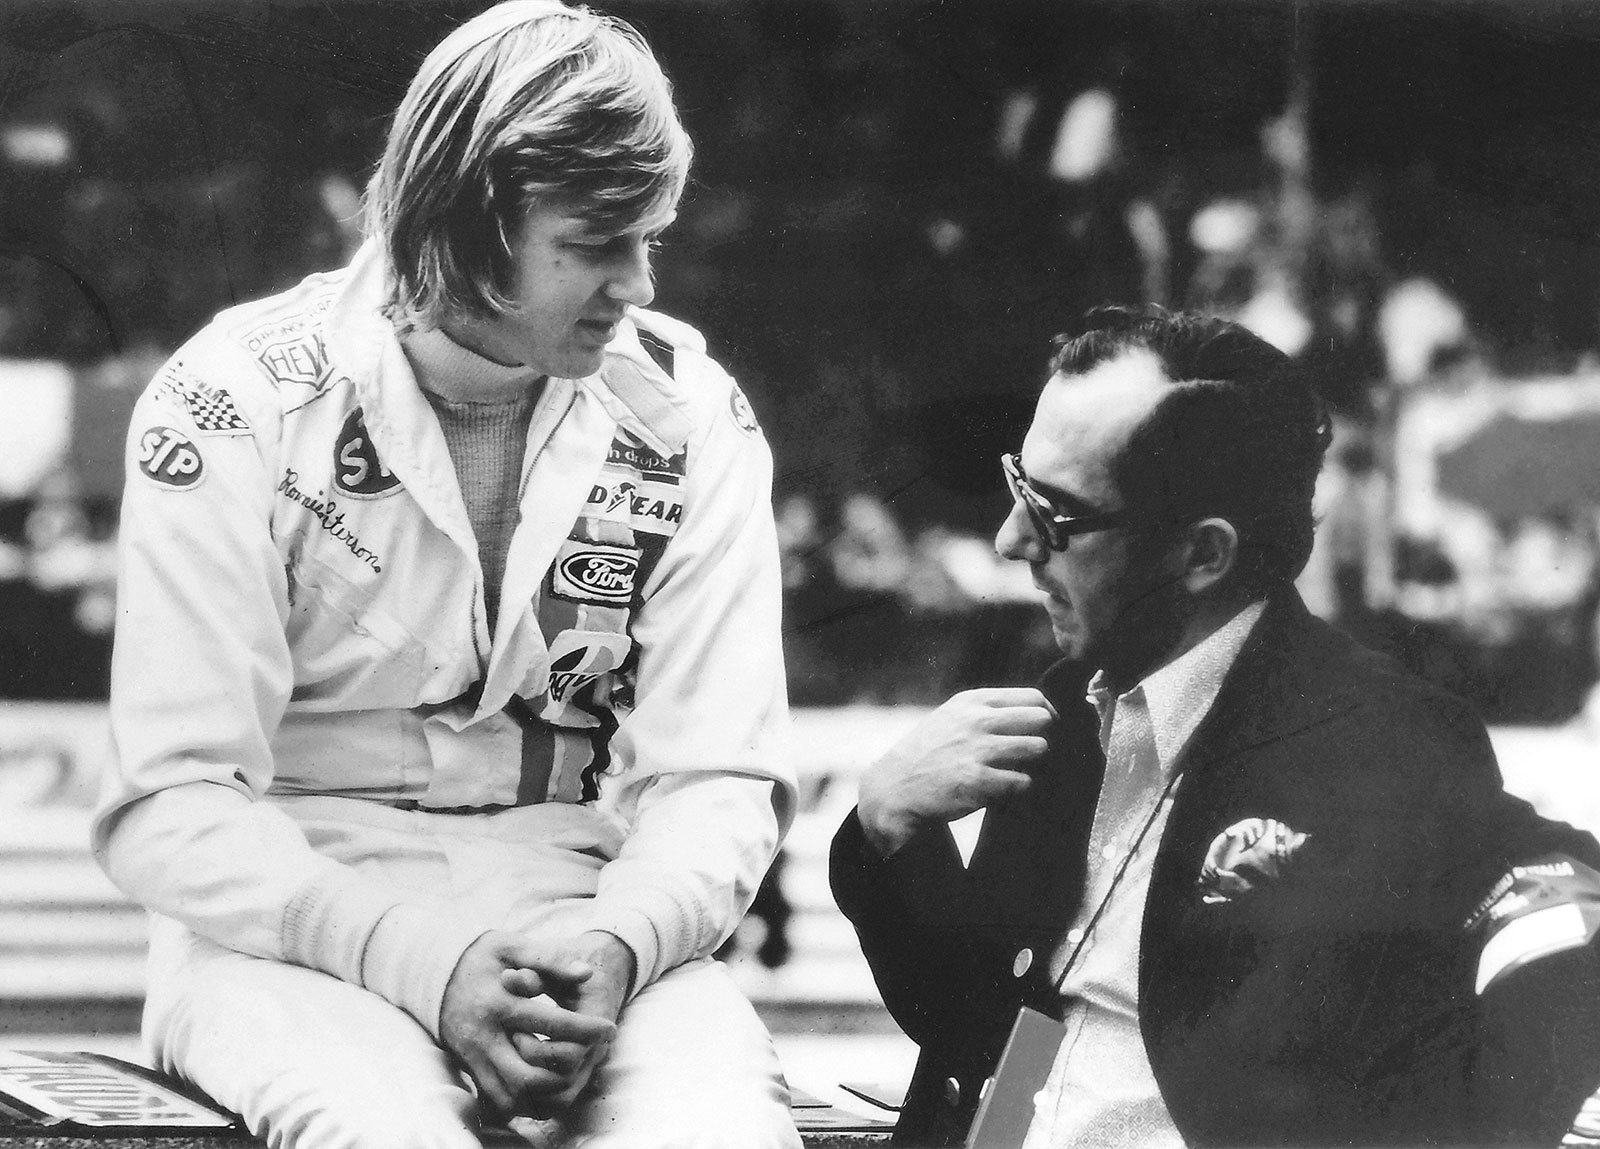 Ronnie_Peterson_and_Jack_Heuer